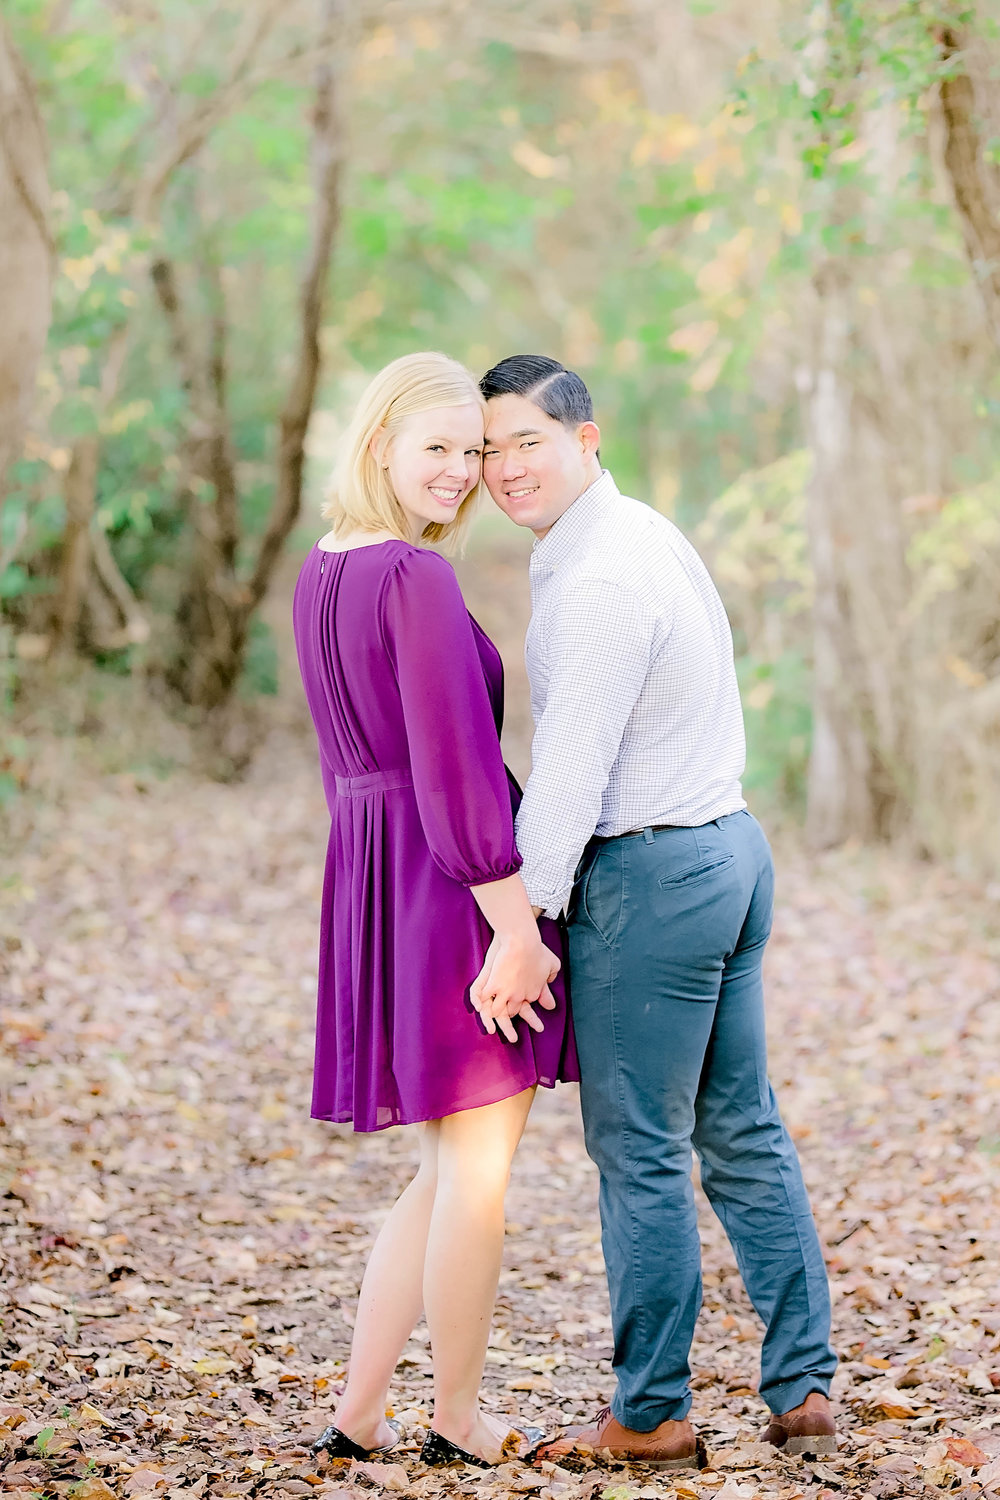 Johnson City, TN sunrise engagement session, East Tennessee wedding photography, Tri Cities engagement photography, military couple